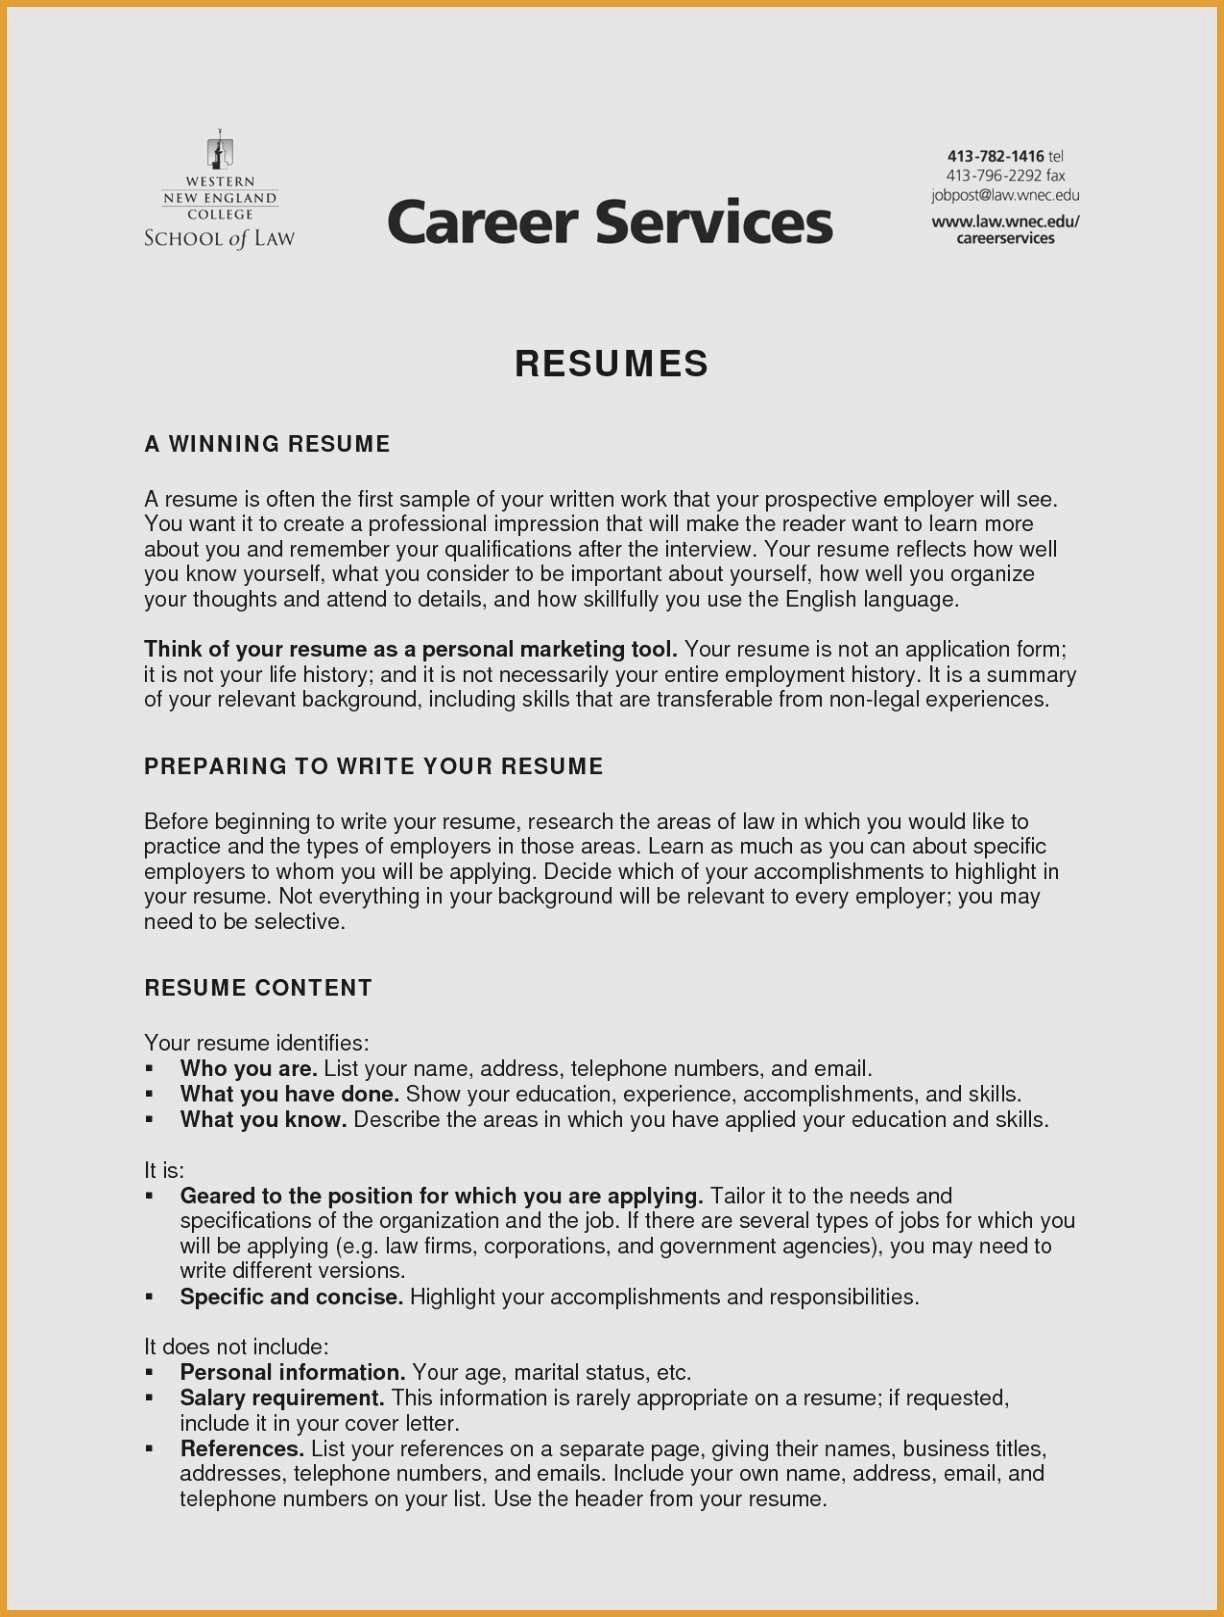 Entry Level Resume Skills - Entry Level Marketing Resume Type A Resume Beautiful New Entry Level